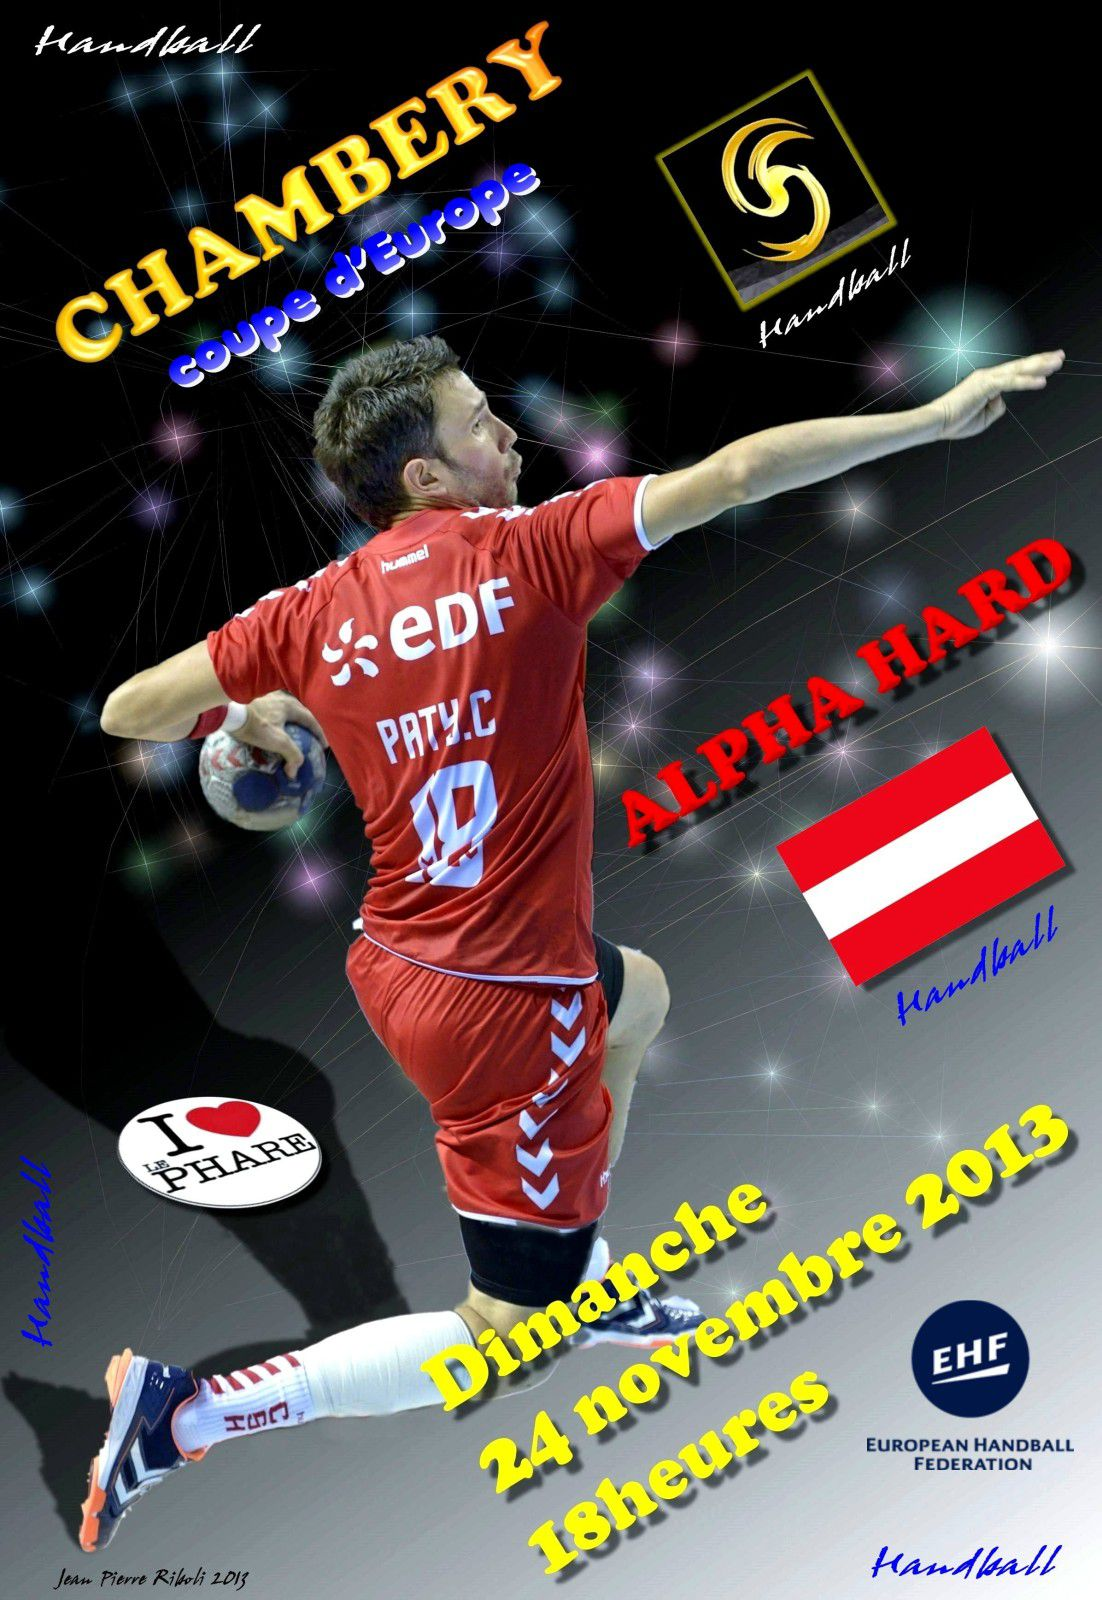 Affiche-Coupe-EHF-24-11-2013.jpg